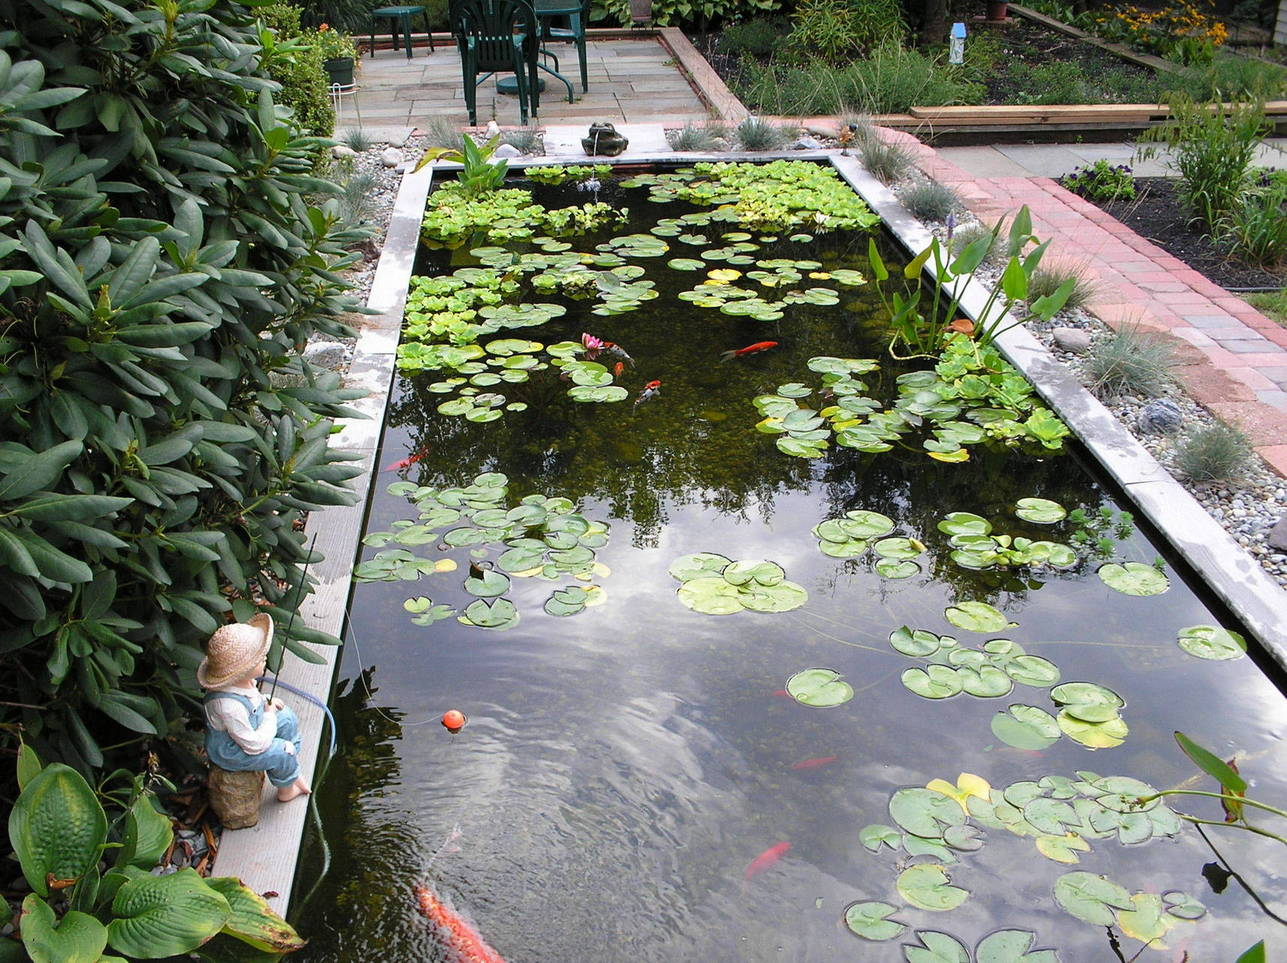 Oman landscape home landscaping designs your own t shirts for Small koi pond